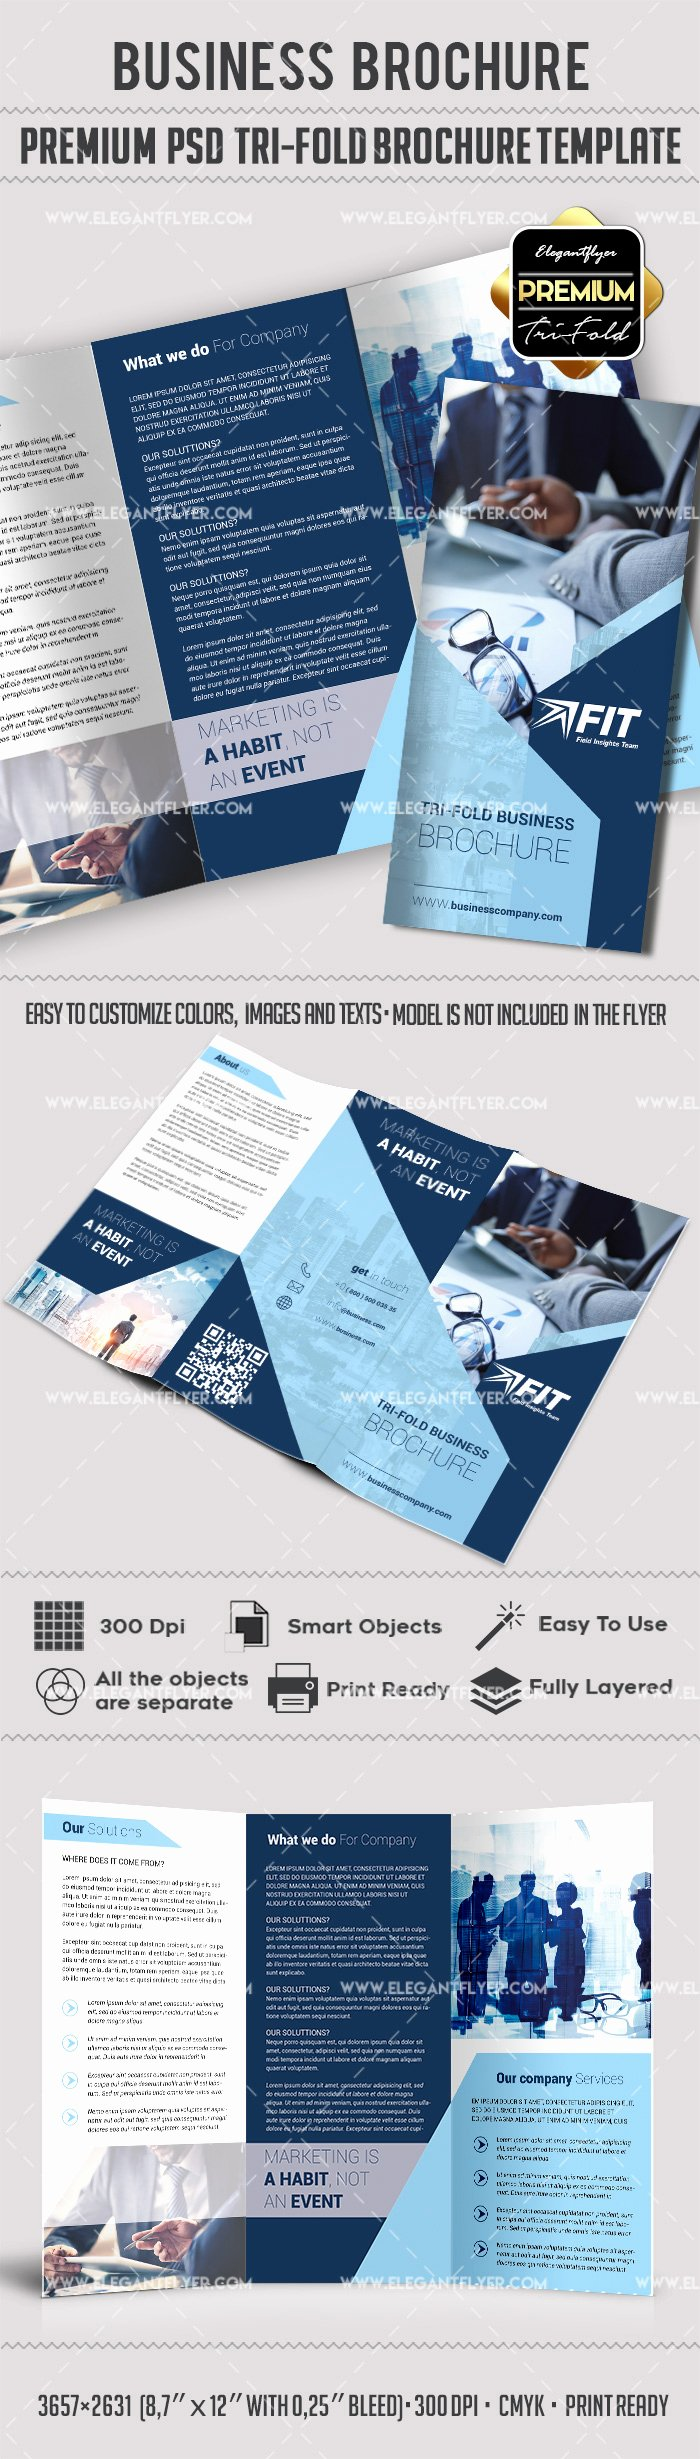 Photoshop Trifold Brochure Template Fresh Shop Brochure Template – by Elegantflyer